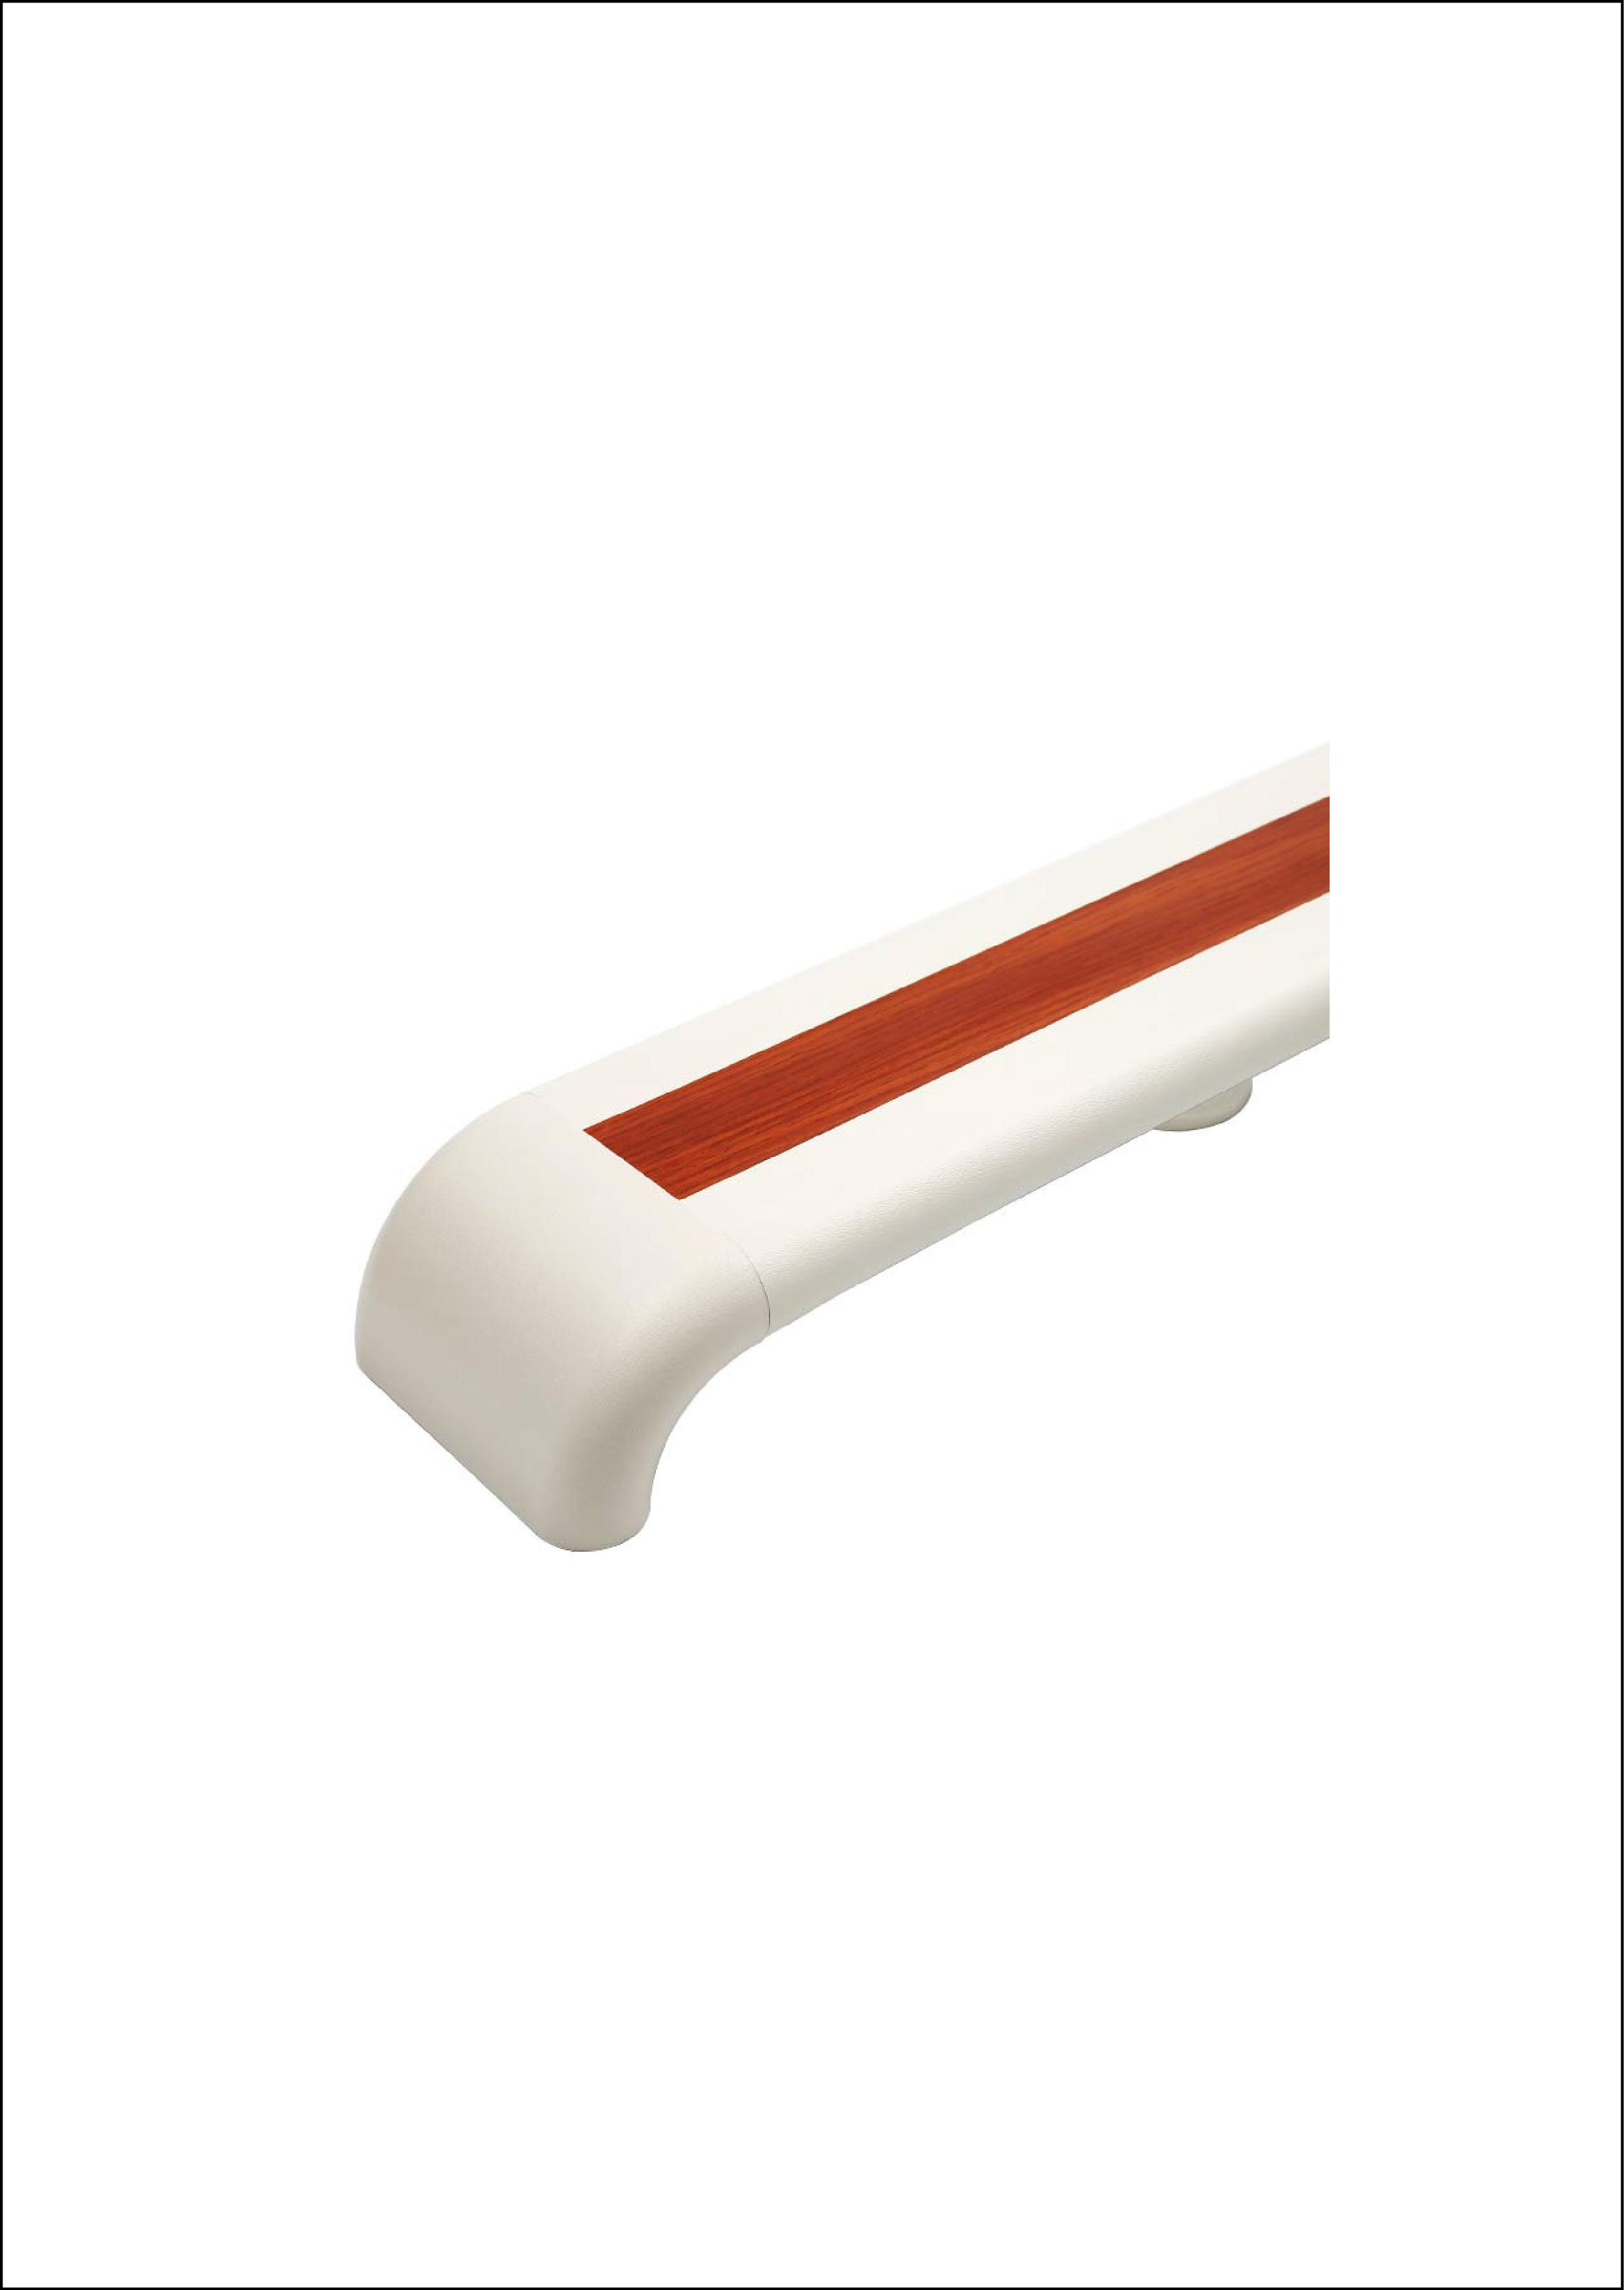 Handrail HS-618 Wooden (2mm Thickness)